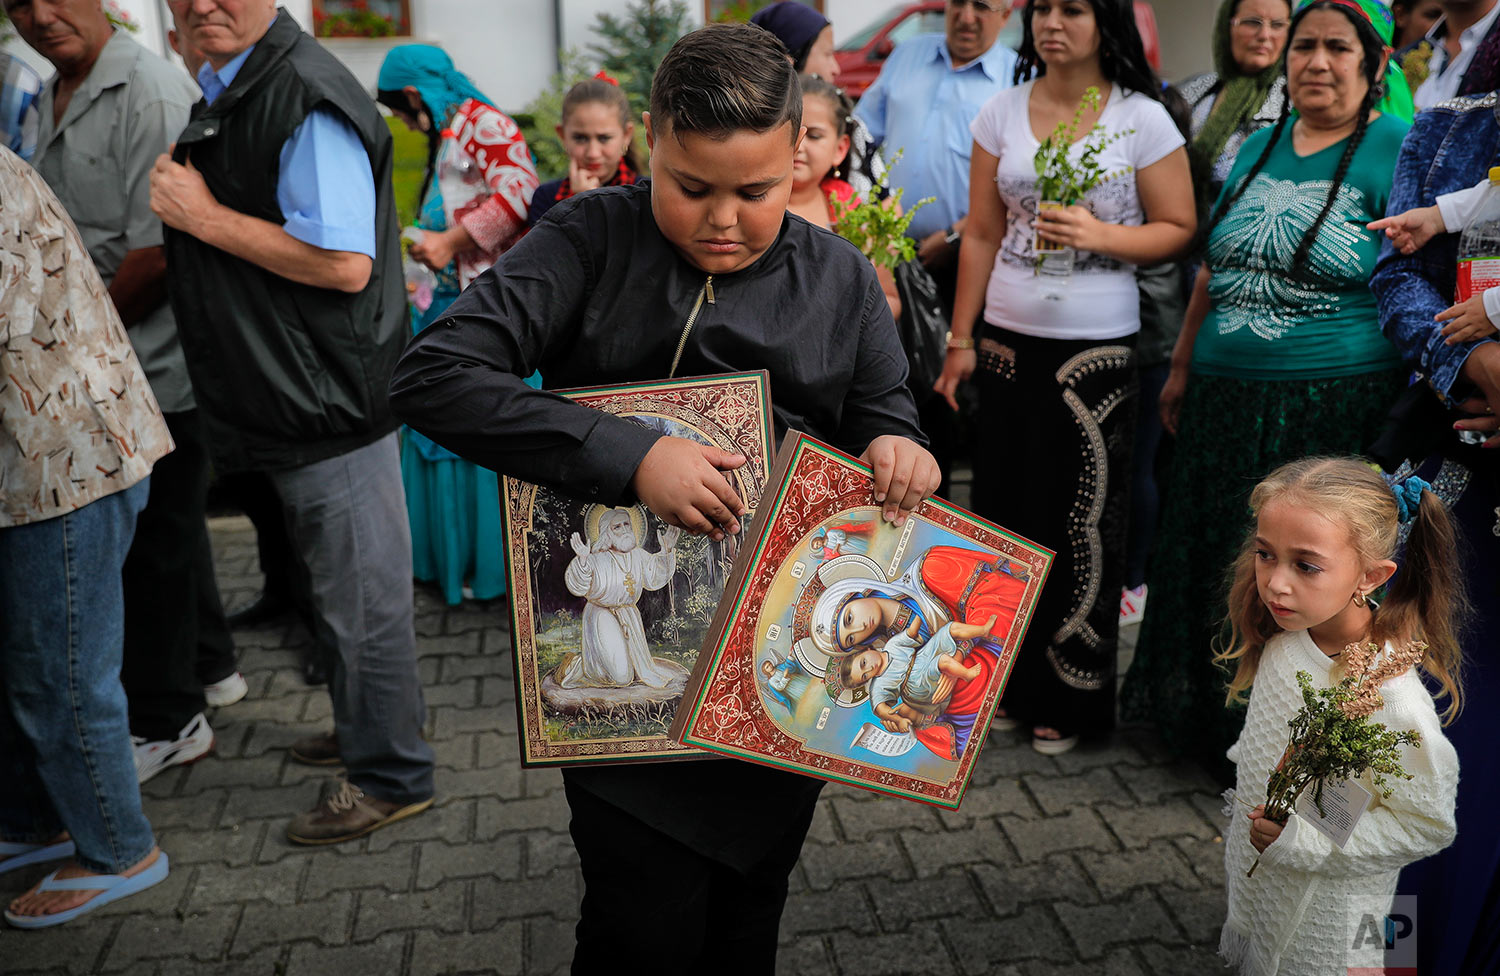 In this Friday, Sept. 8, 2017 photograph, a Roma handles icons as others wait in line to touch the holy remains of a saint at the Bistrita monastery compound in Costesti, Romania.  (AP Photo/Vadim Ghirda)